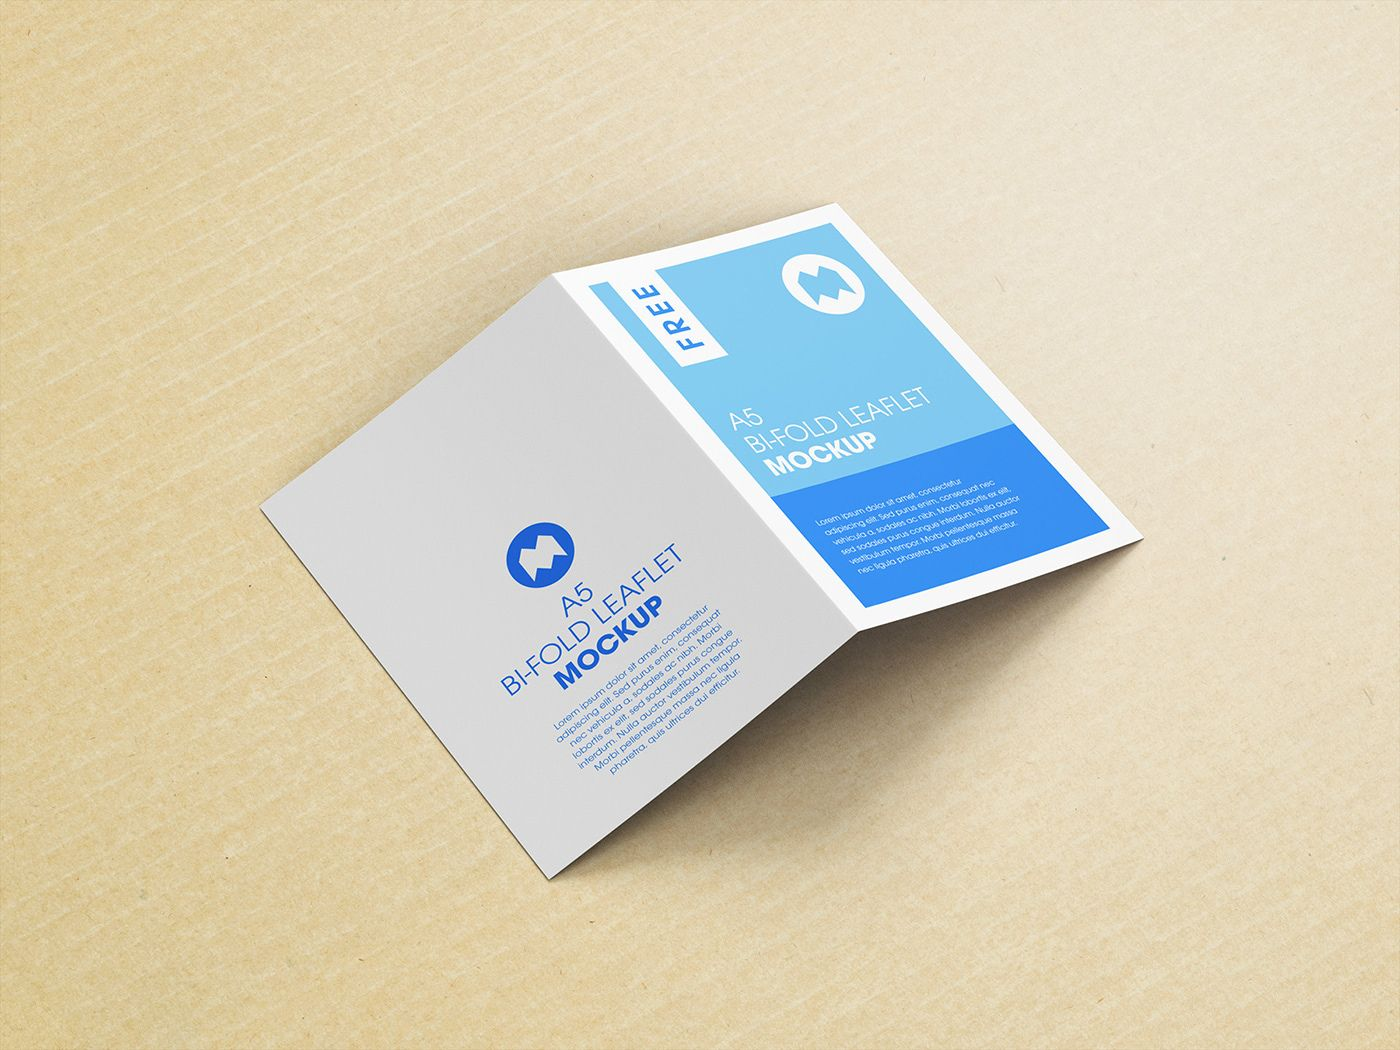 Free Bi Fold A5 Leaflet Mockup With Free Cardboard Paper Texture Easy To Use And Modify May Be Used In Private Leaflet Leaflet Design Cardboard Paper Texture